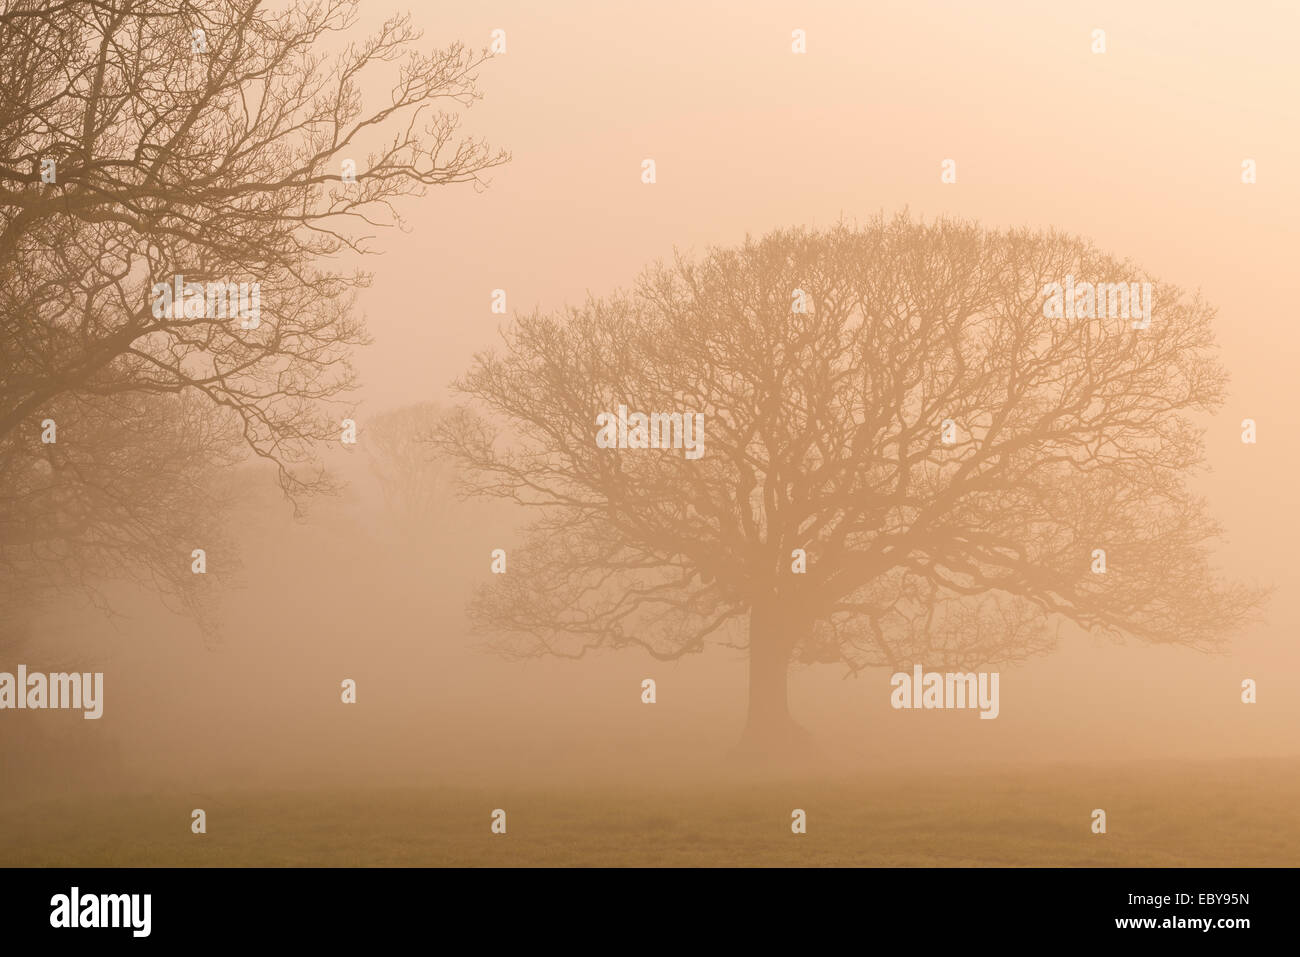 Trees in winter fog at sunrise, Black Dog, Devon, England. Winter (March) 2014. - Stock Image